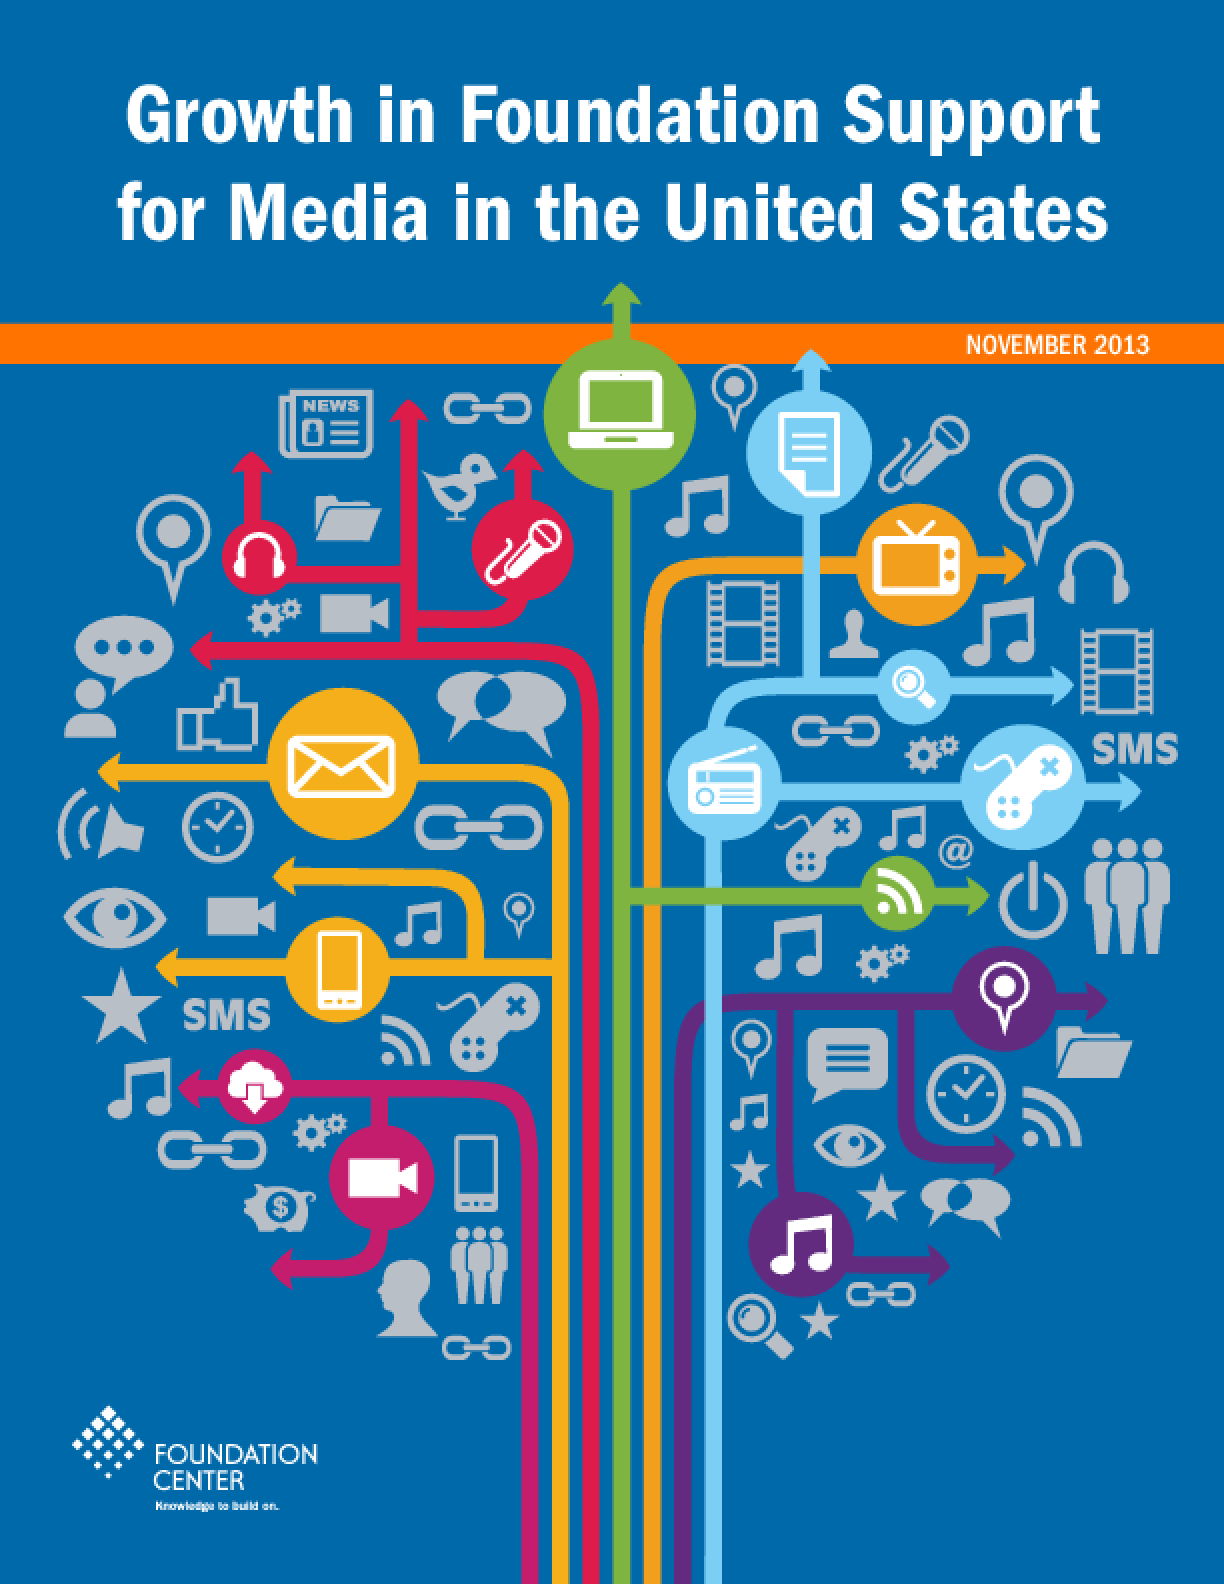 Growth in Foundation Support for Media in the United States